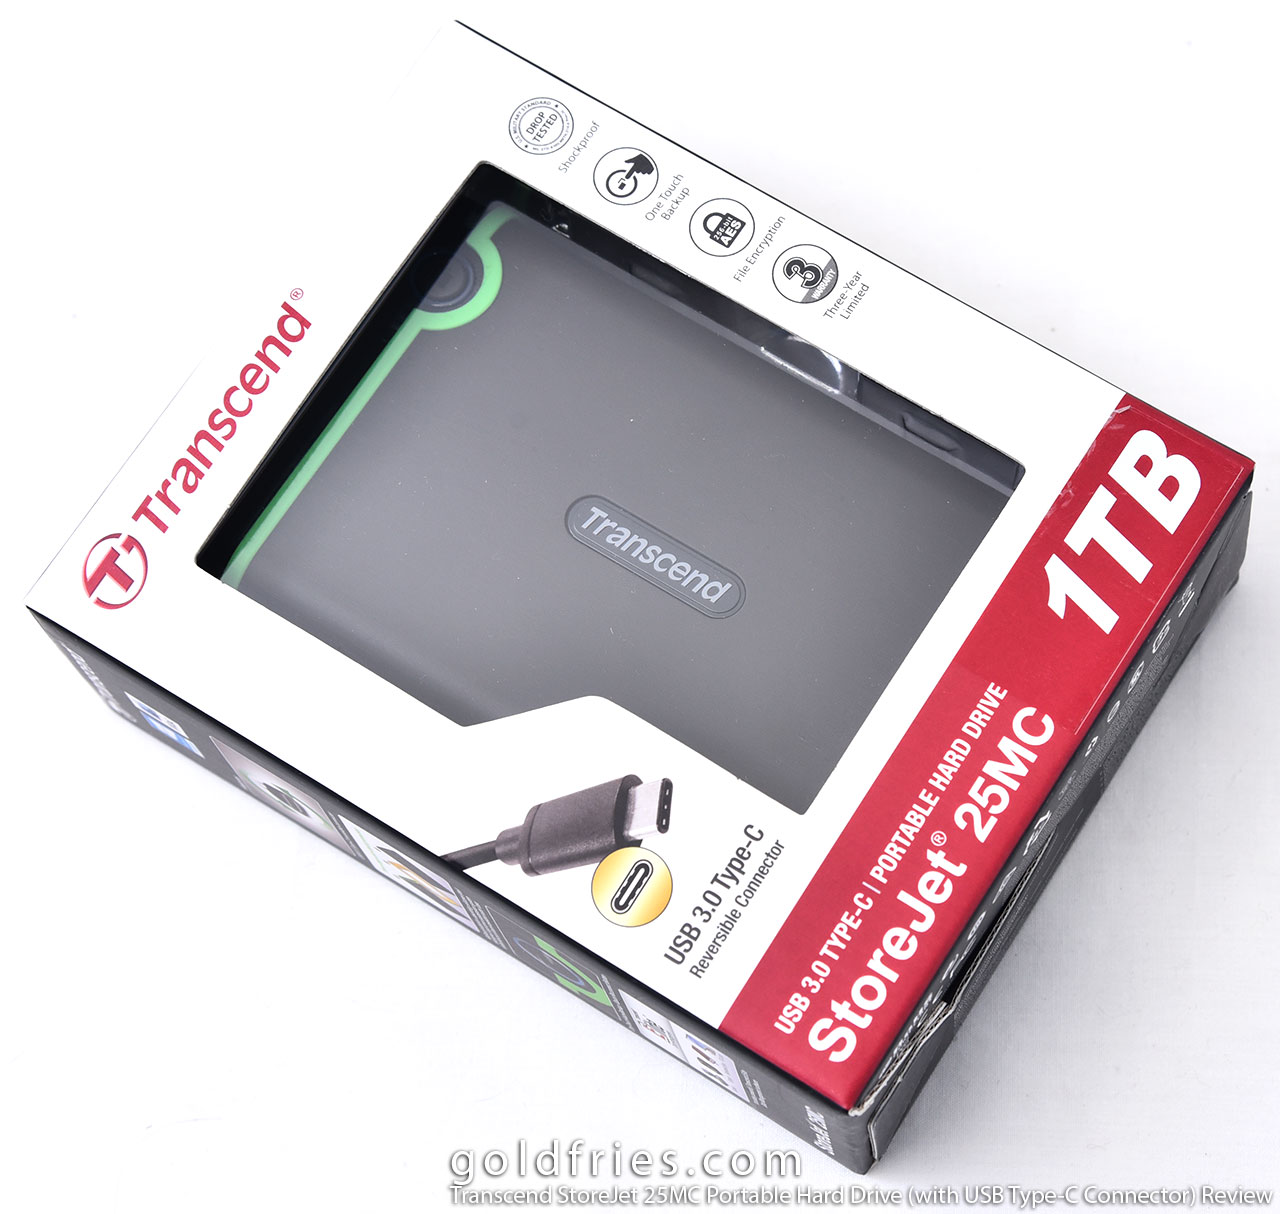 Transcend StoreJet 25MC Portable Hard Drive (with USB Type-C Connector) Review